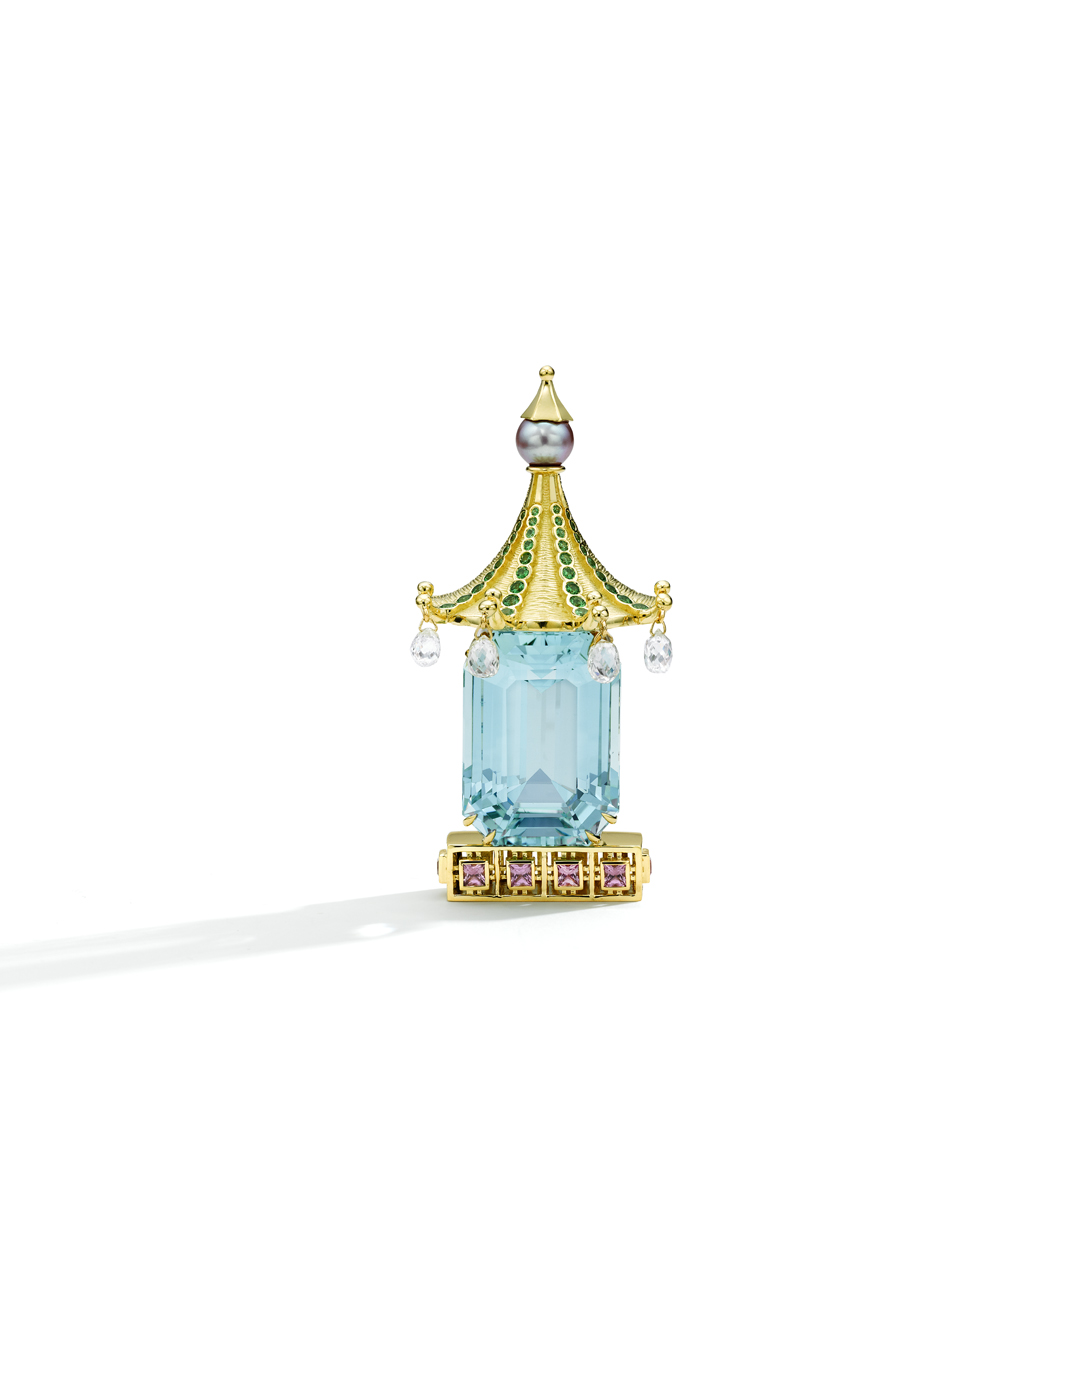 mish_jewelry_products_Chinois-Brch-Carousel-3